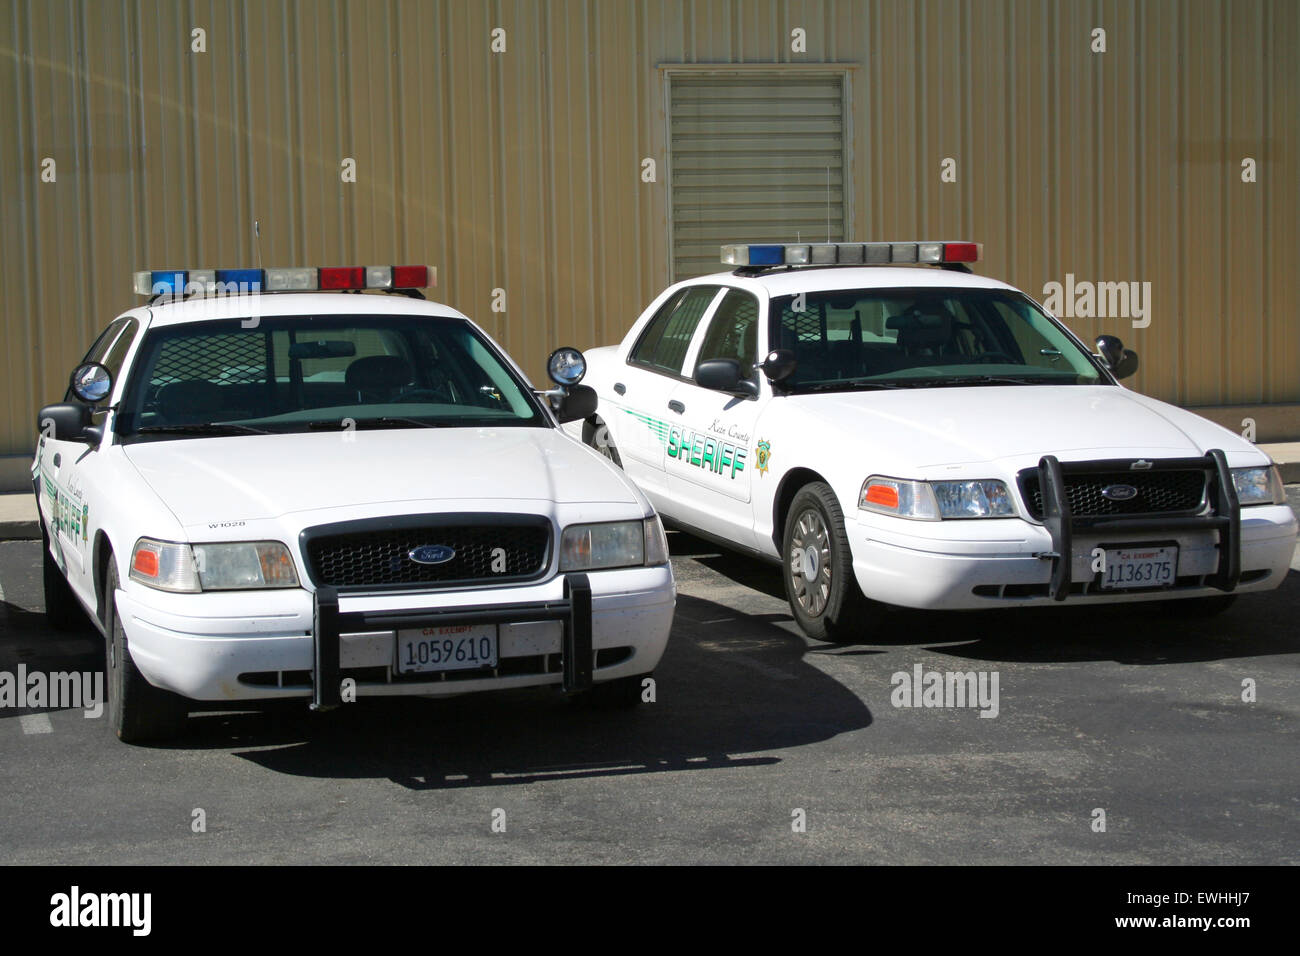 Squad Cars For Sale